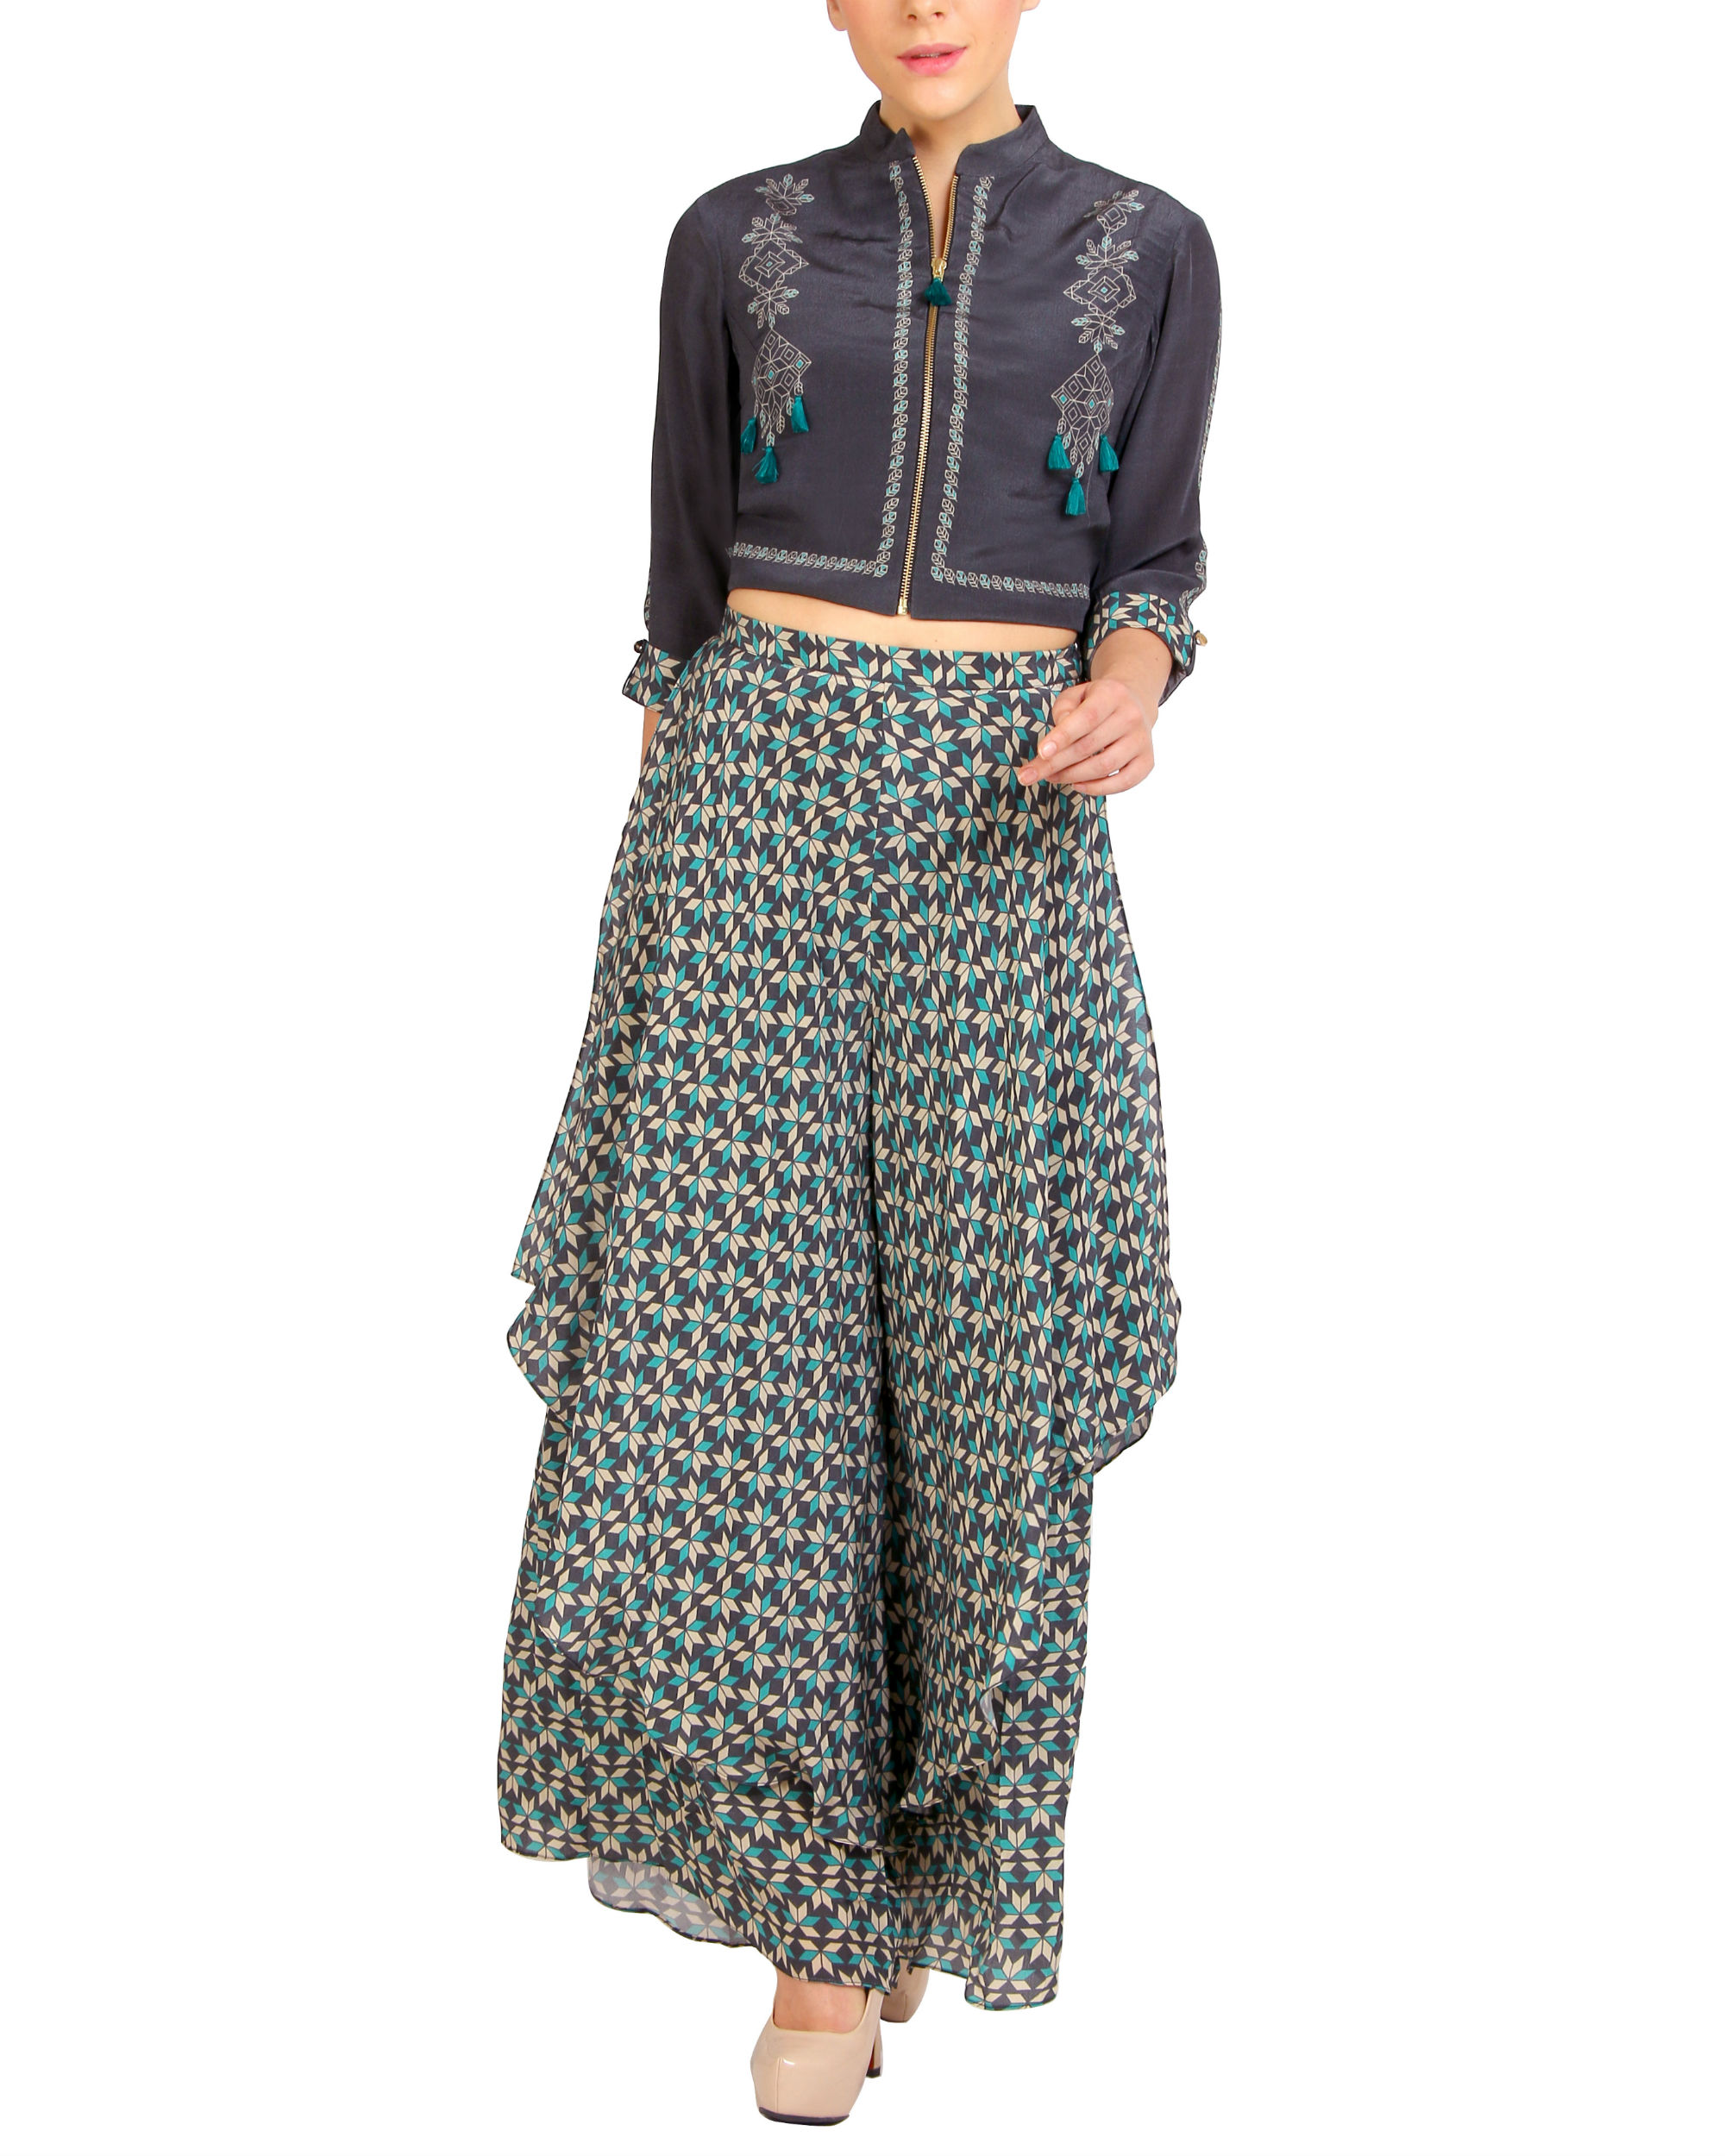 Tasseled zipper top with printed pants